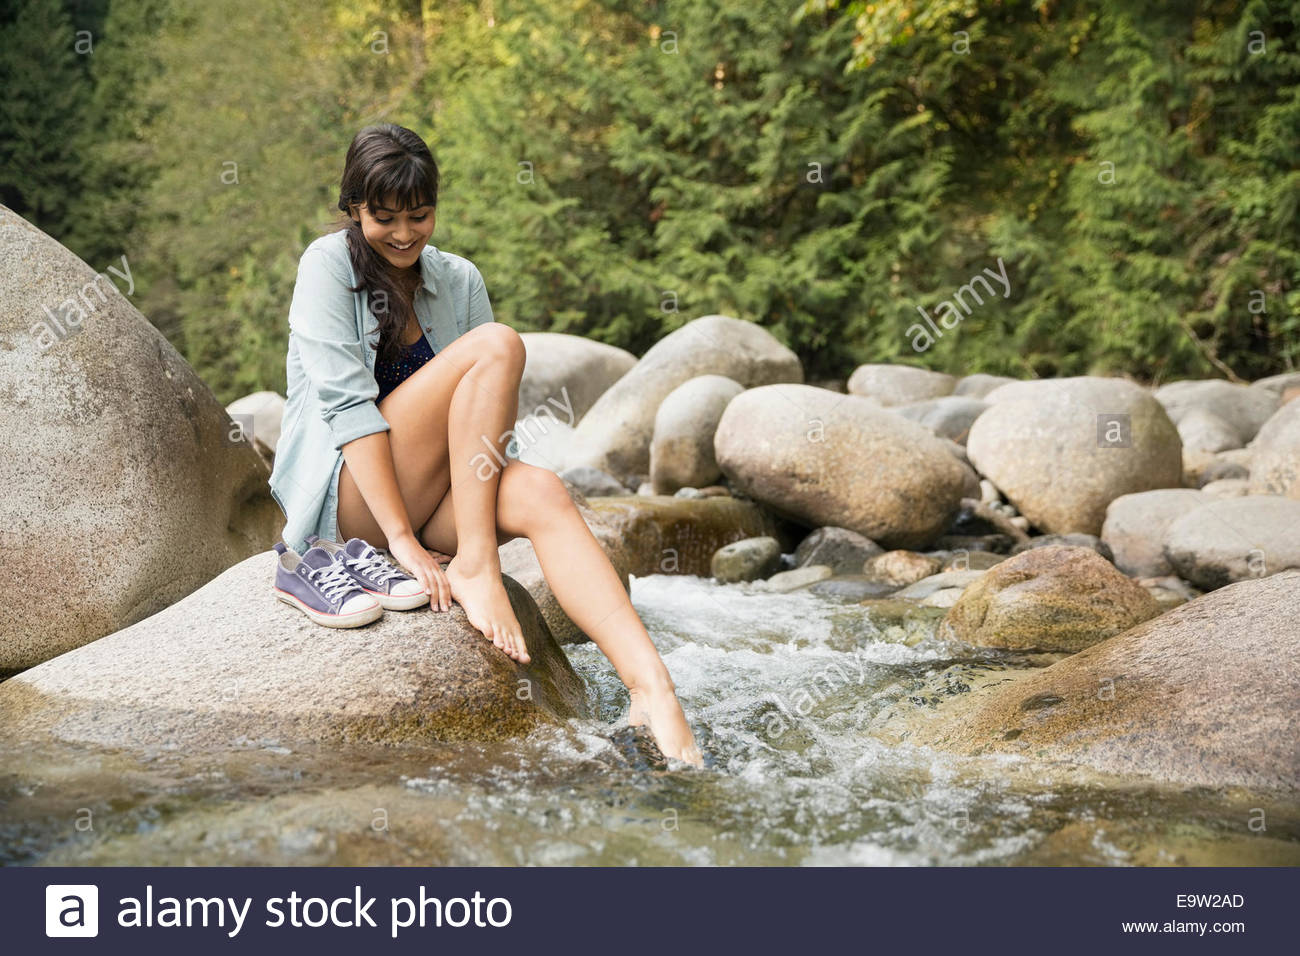 Woman dipping feet in creek in woods - Stock Image